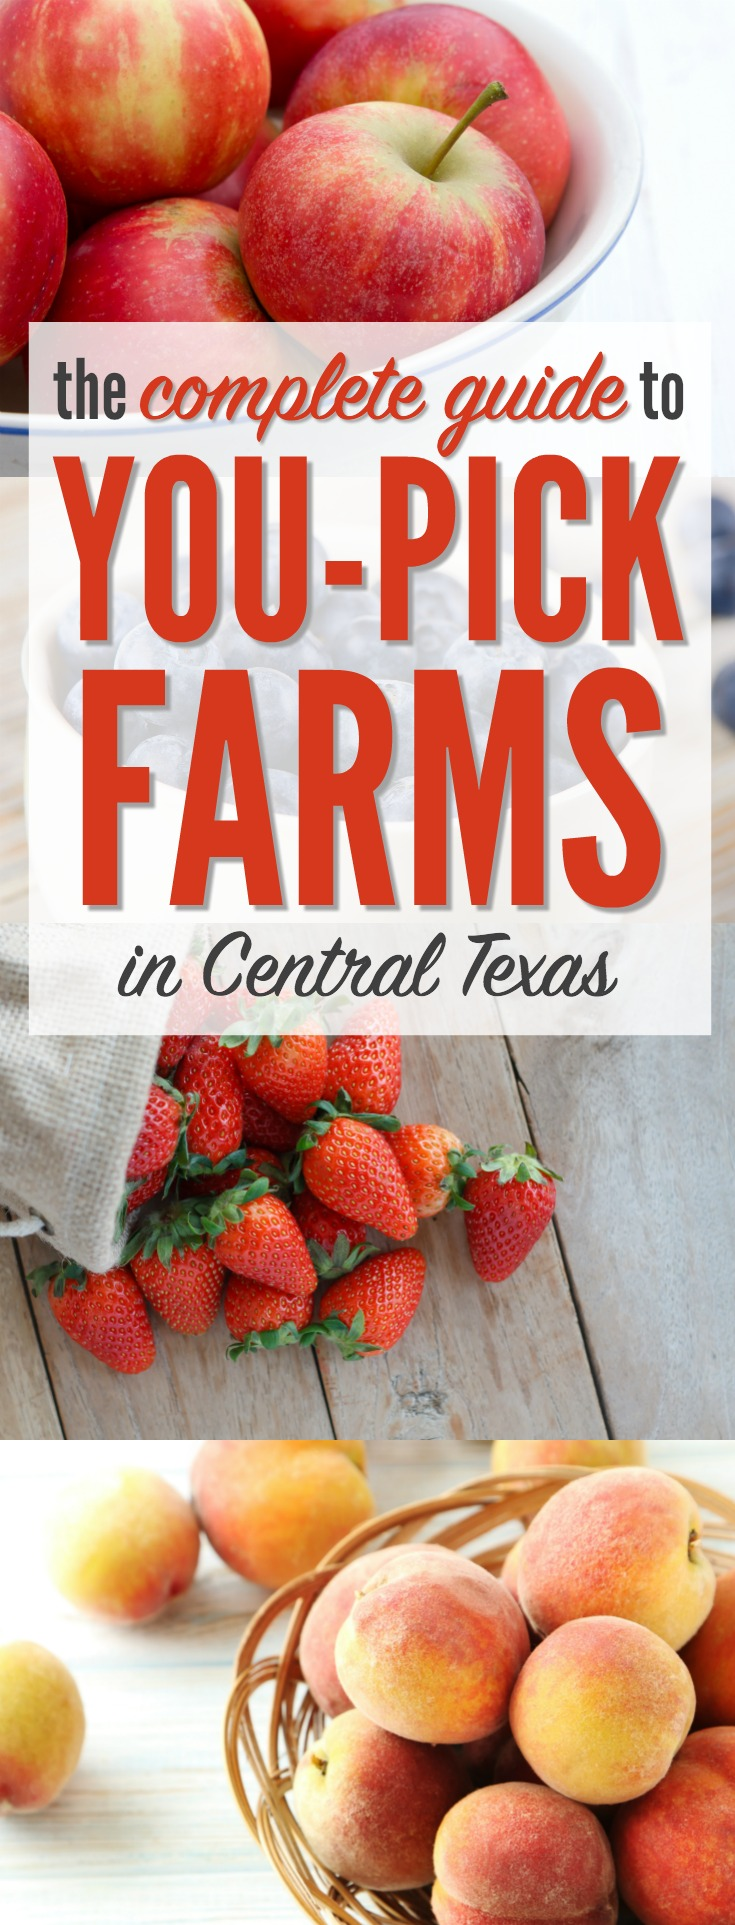 Best strawberries to grow in texas - Best Strawberries To Grow In Texas 42